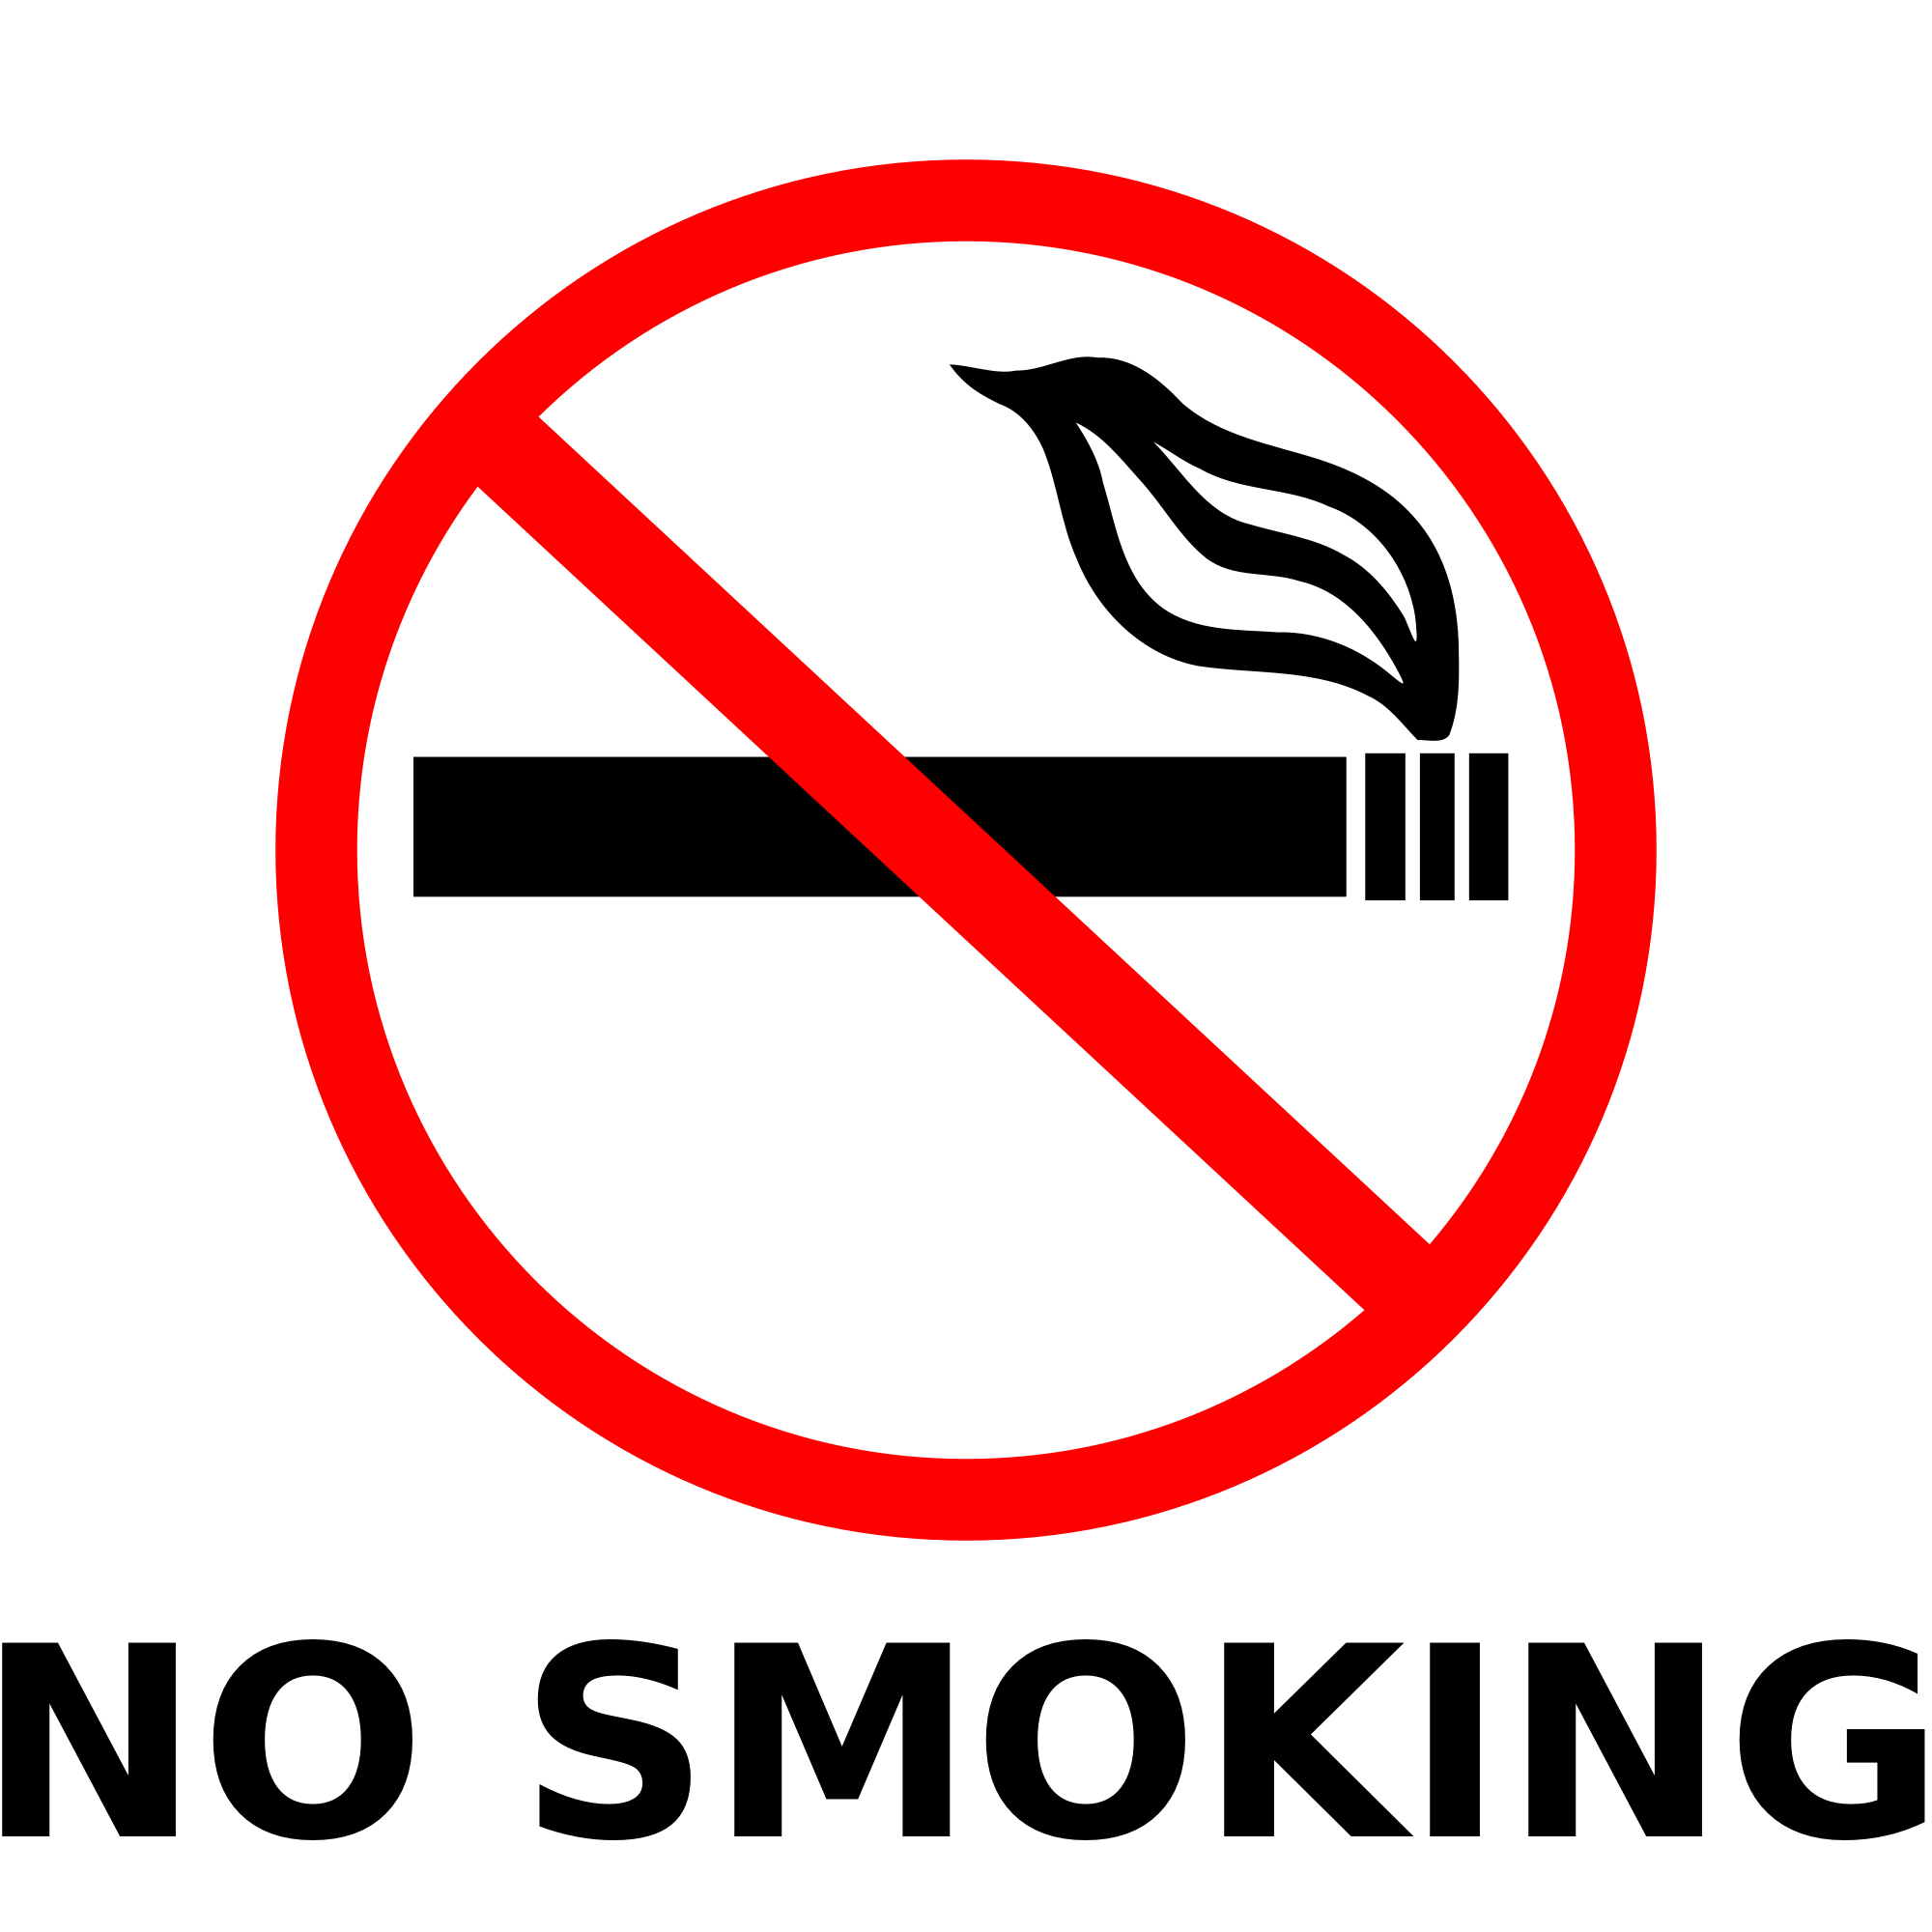 pics of no smoking clipart best list of smoking bans in the encyclopedia